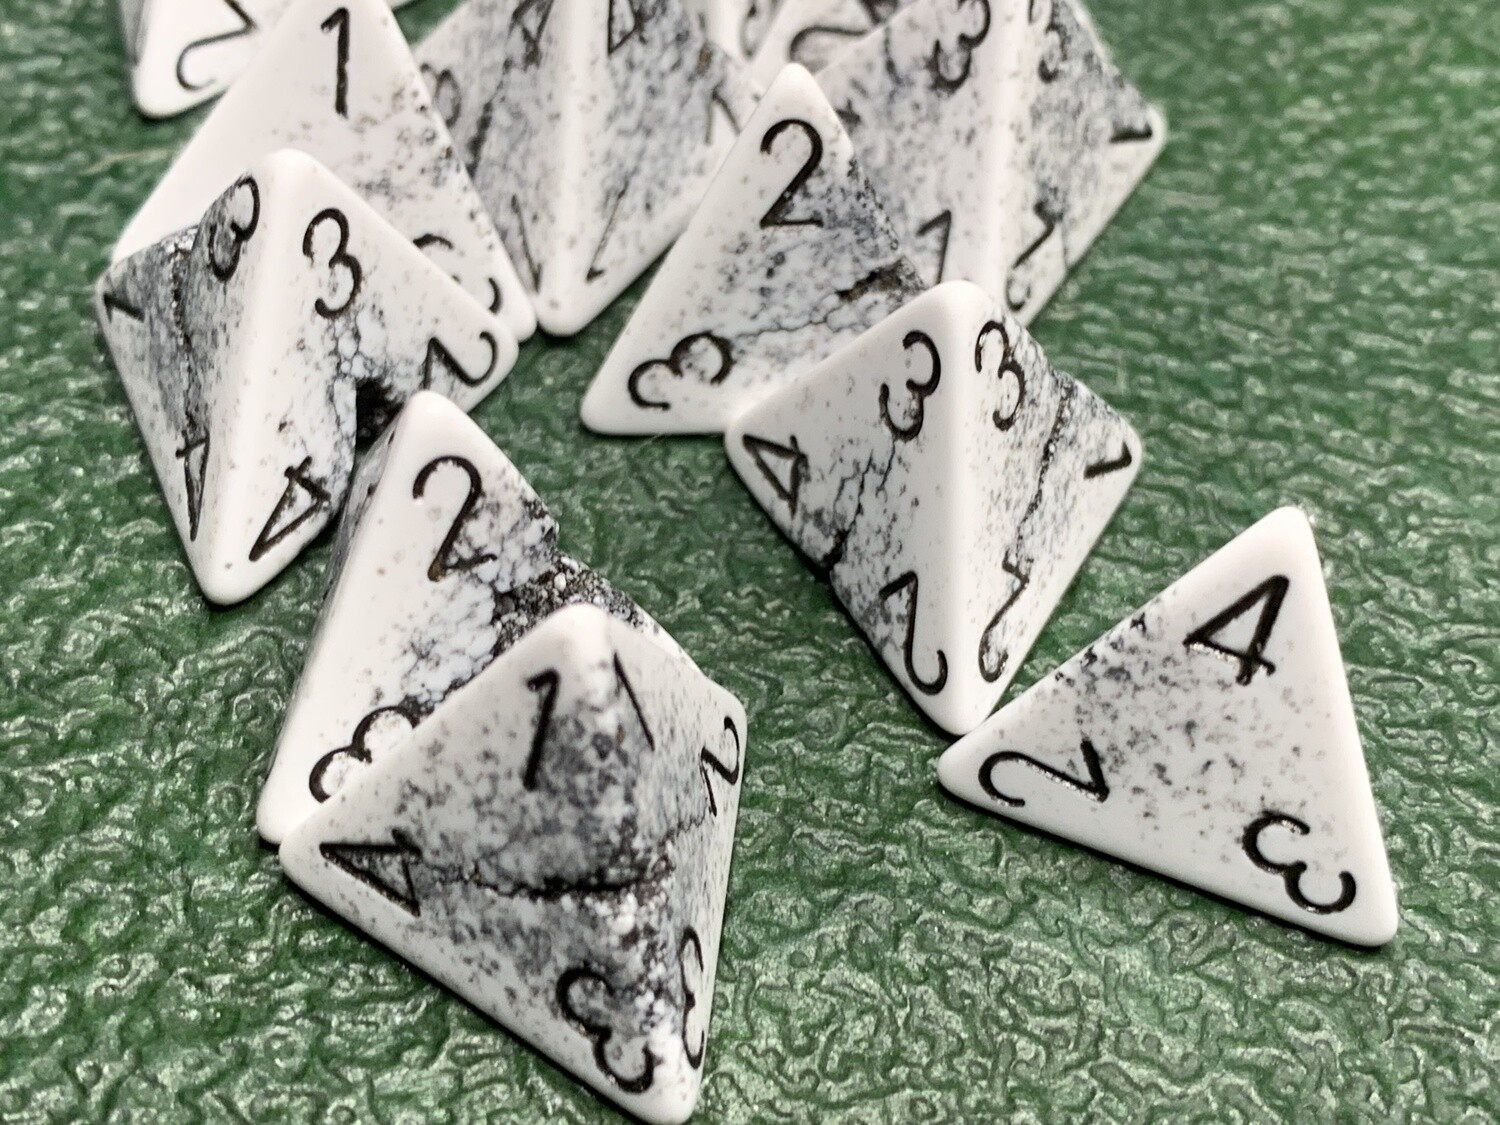 Chessex Error Cracked White D4 Polyhedral Gaming Dice